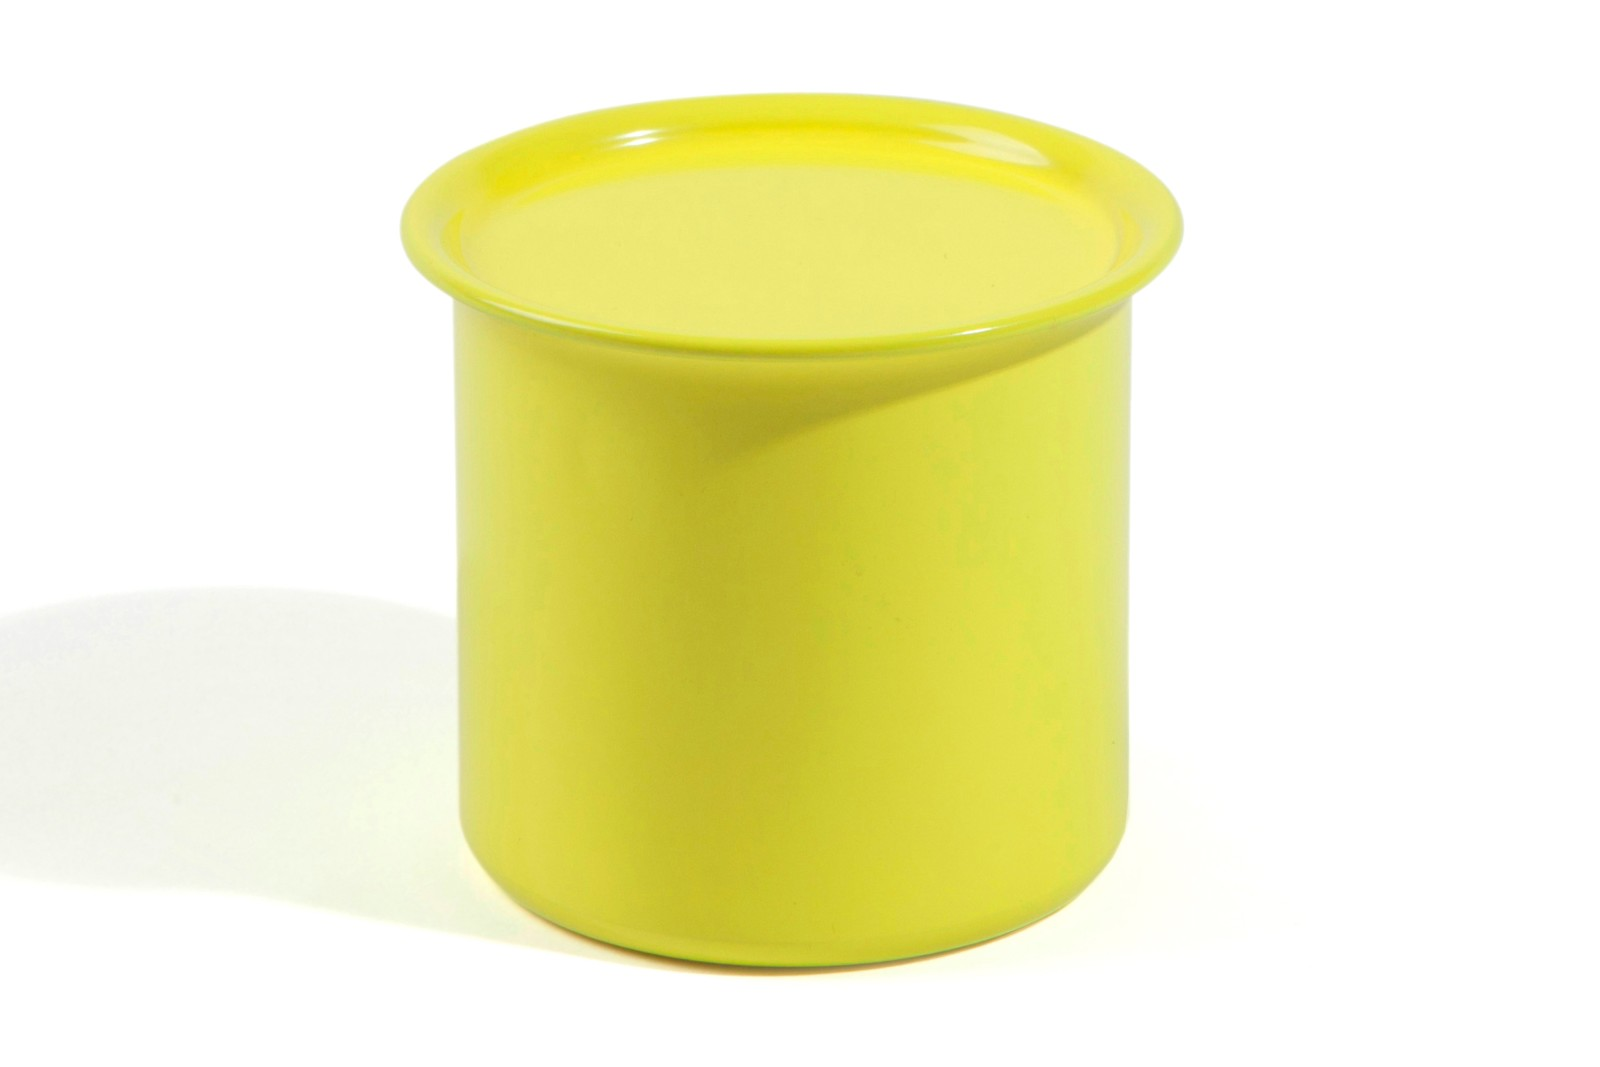 Ayasa Storage Container Yellow with Metal Lid, 0.5L